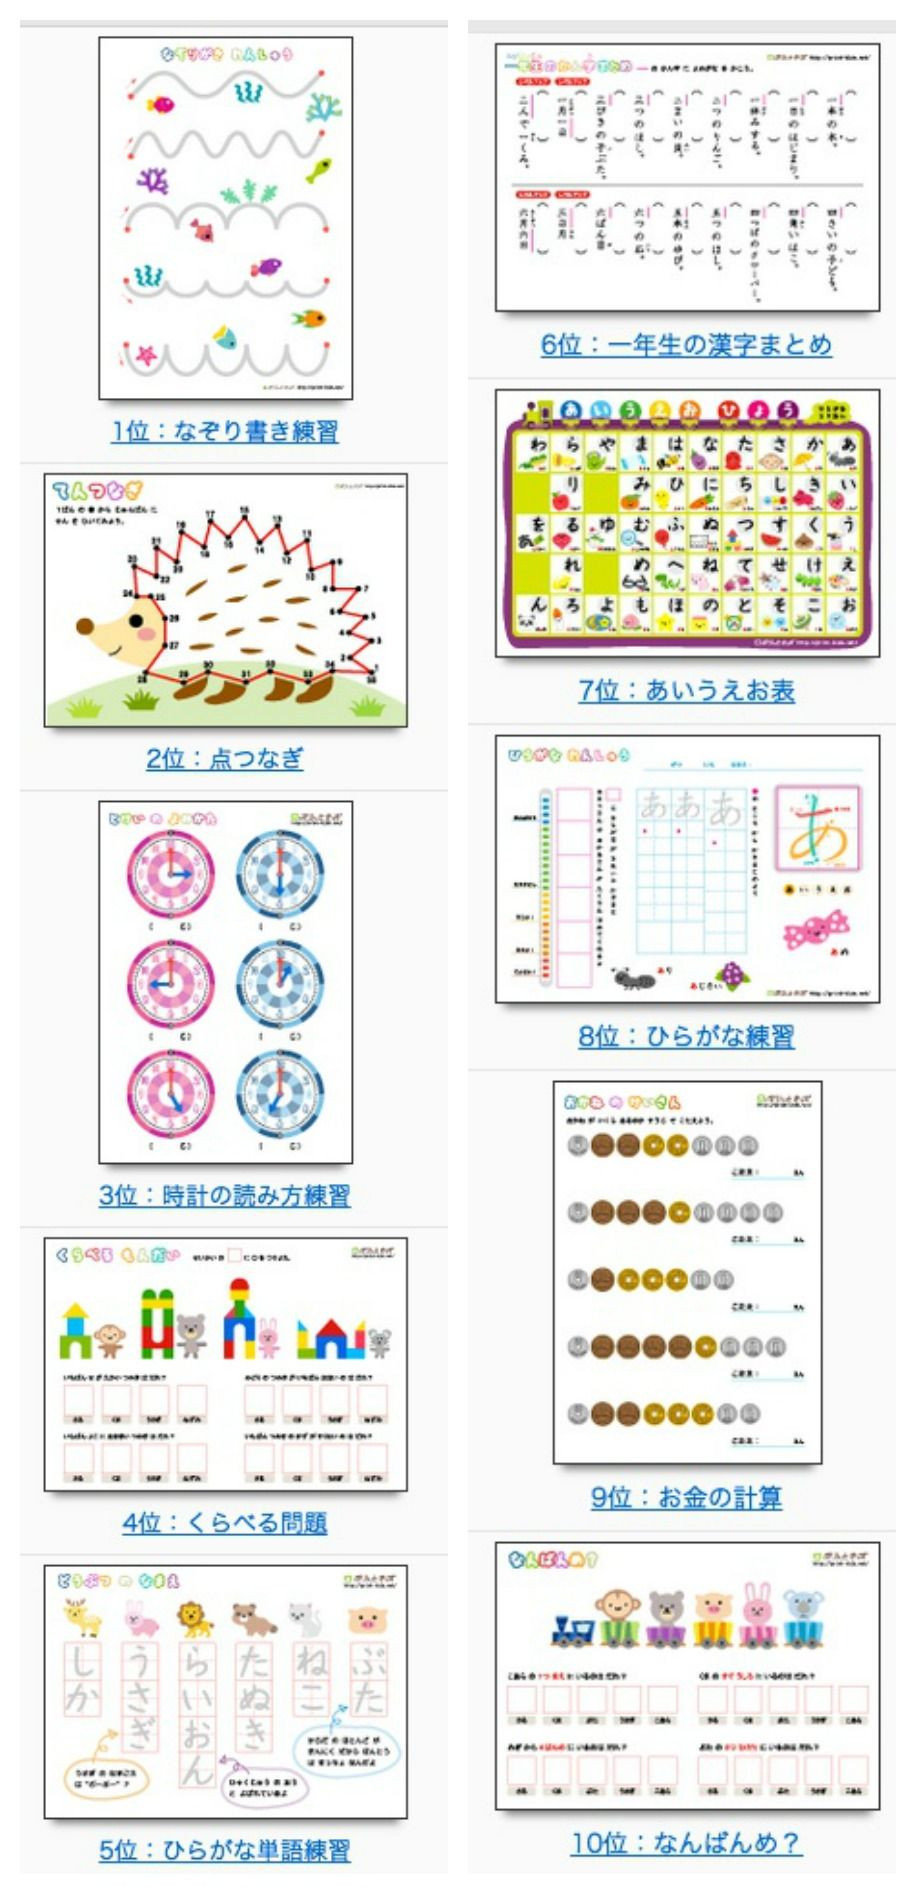 Printable Kanji Practice Sheets Print Kids Printable Japanese Educational Worksheets for